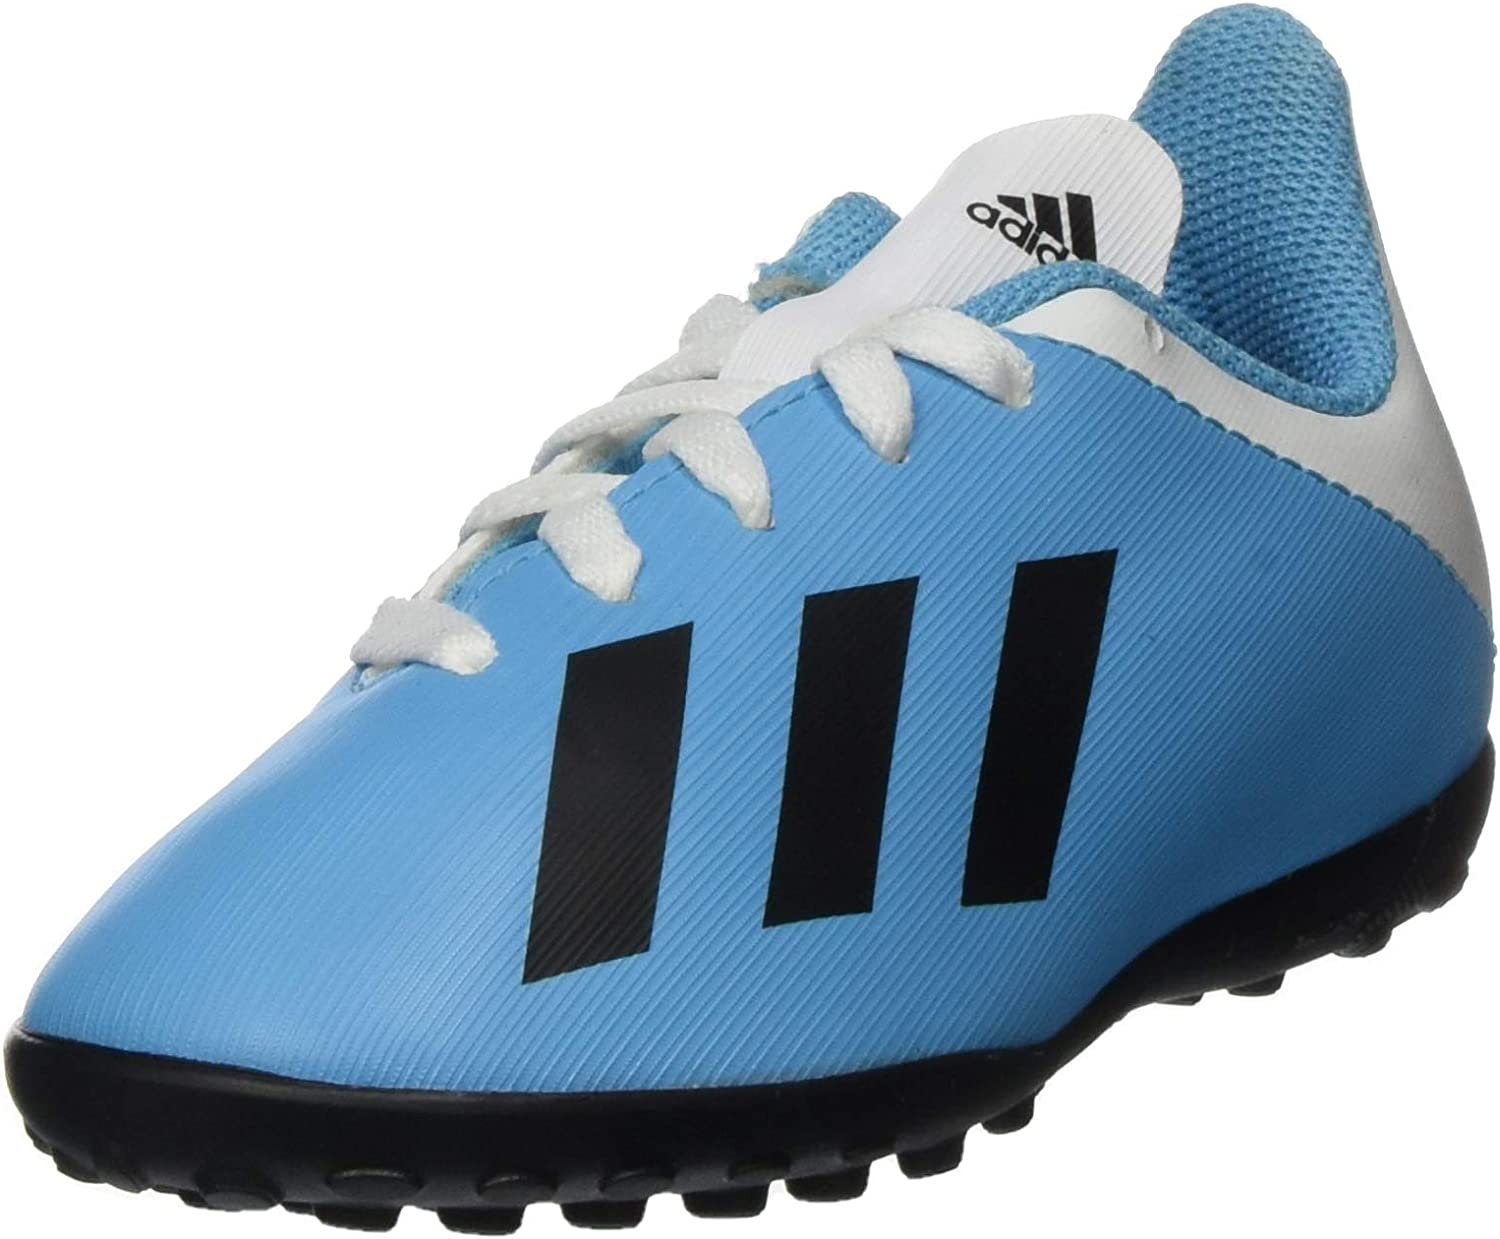 adidas Boys Soccer Shoes Turf Cleats